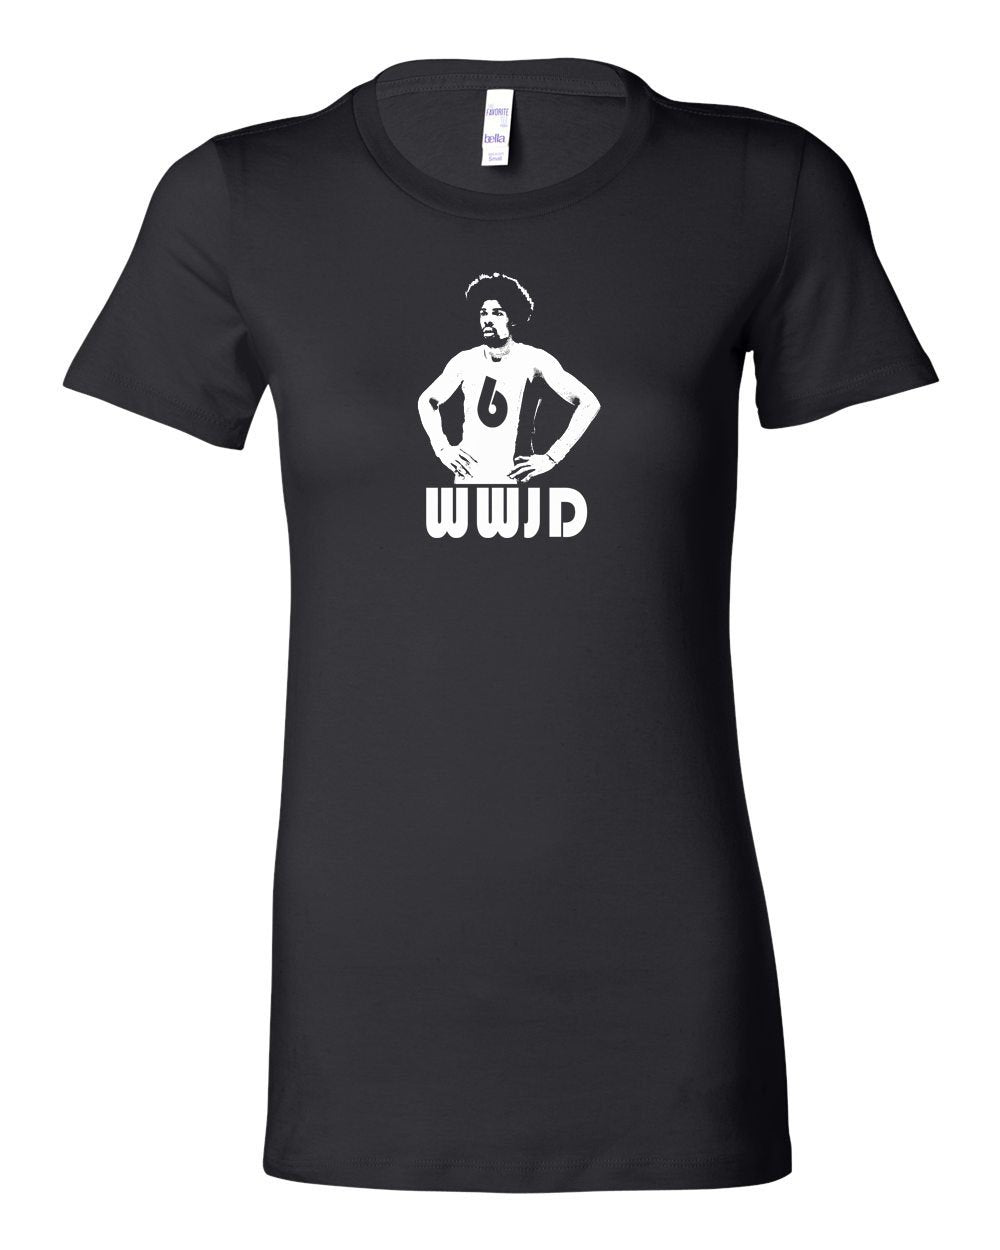 WWJD LADIES Junior-Fit T-Shirt